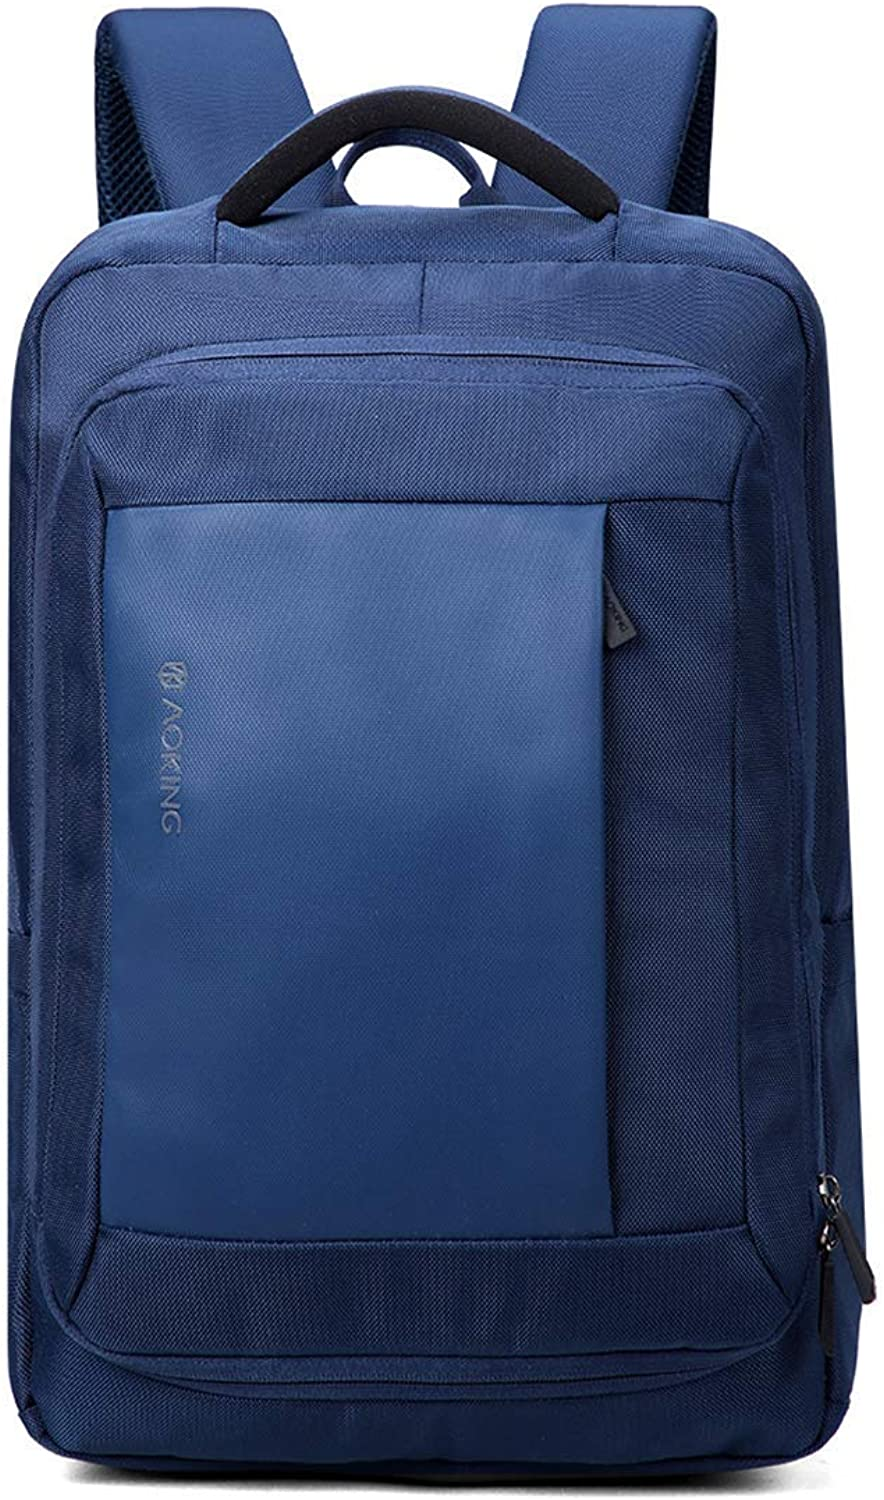 Duffel Bag Business Computer Backpack Large Capacity Lightweight School Bag AntiTheft Gym Bag (color   blueee)